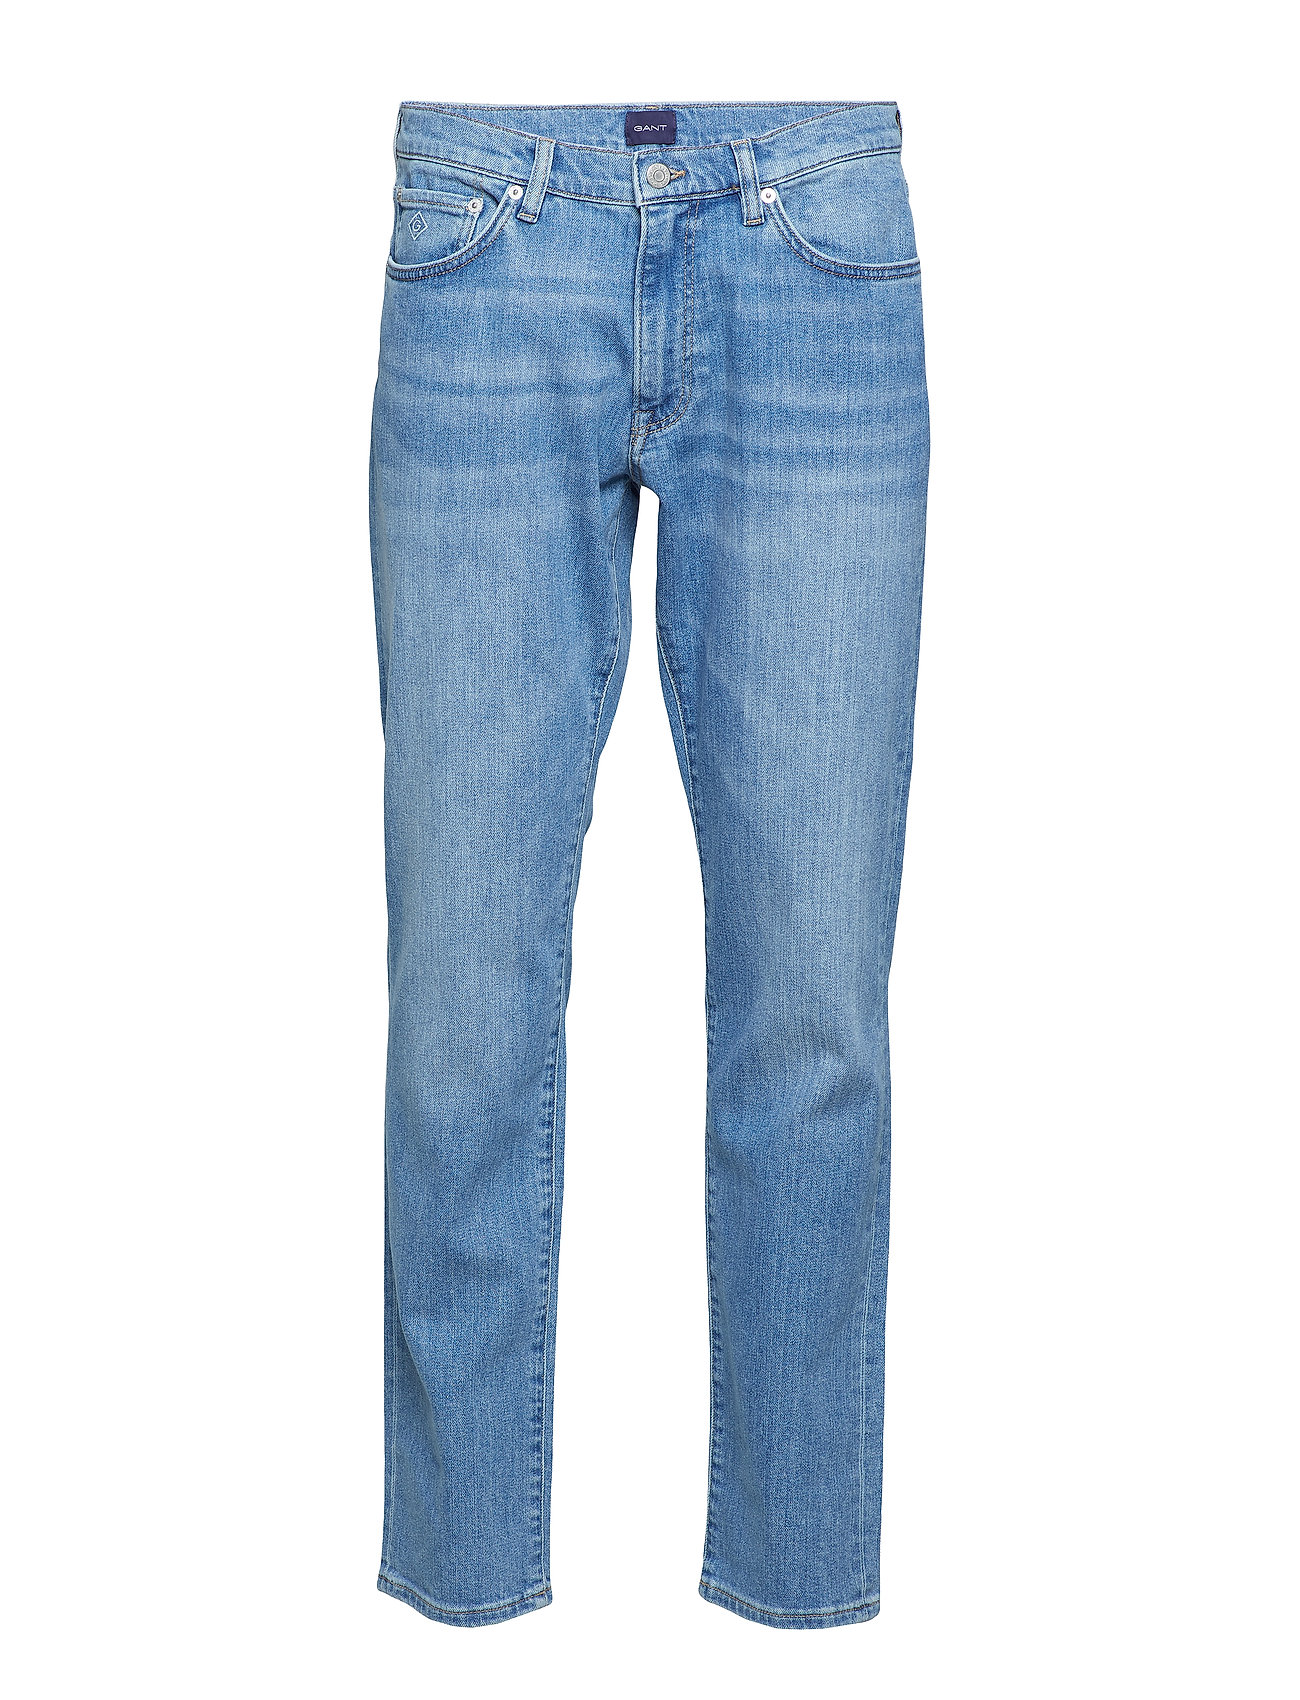 GANT SLIM GANT JEANS - LIGHT BLUE WORN IN